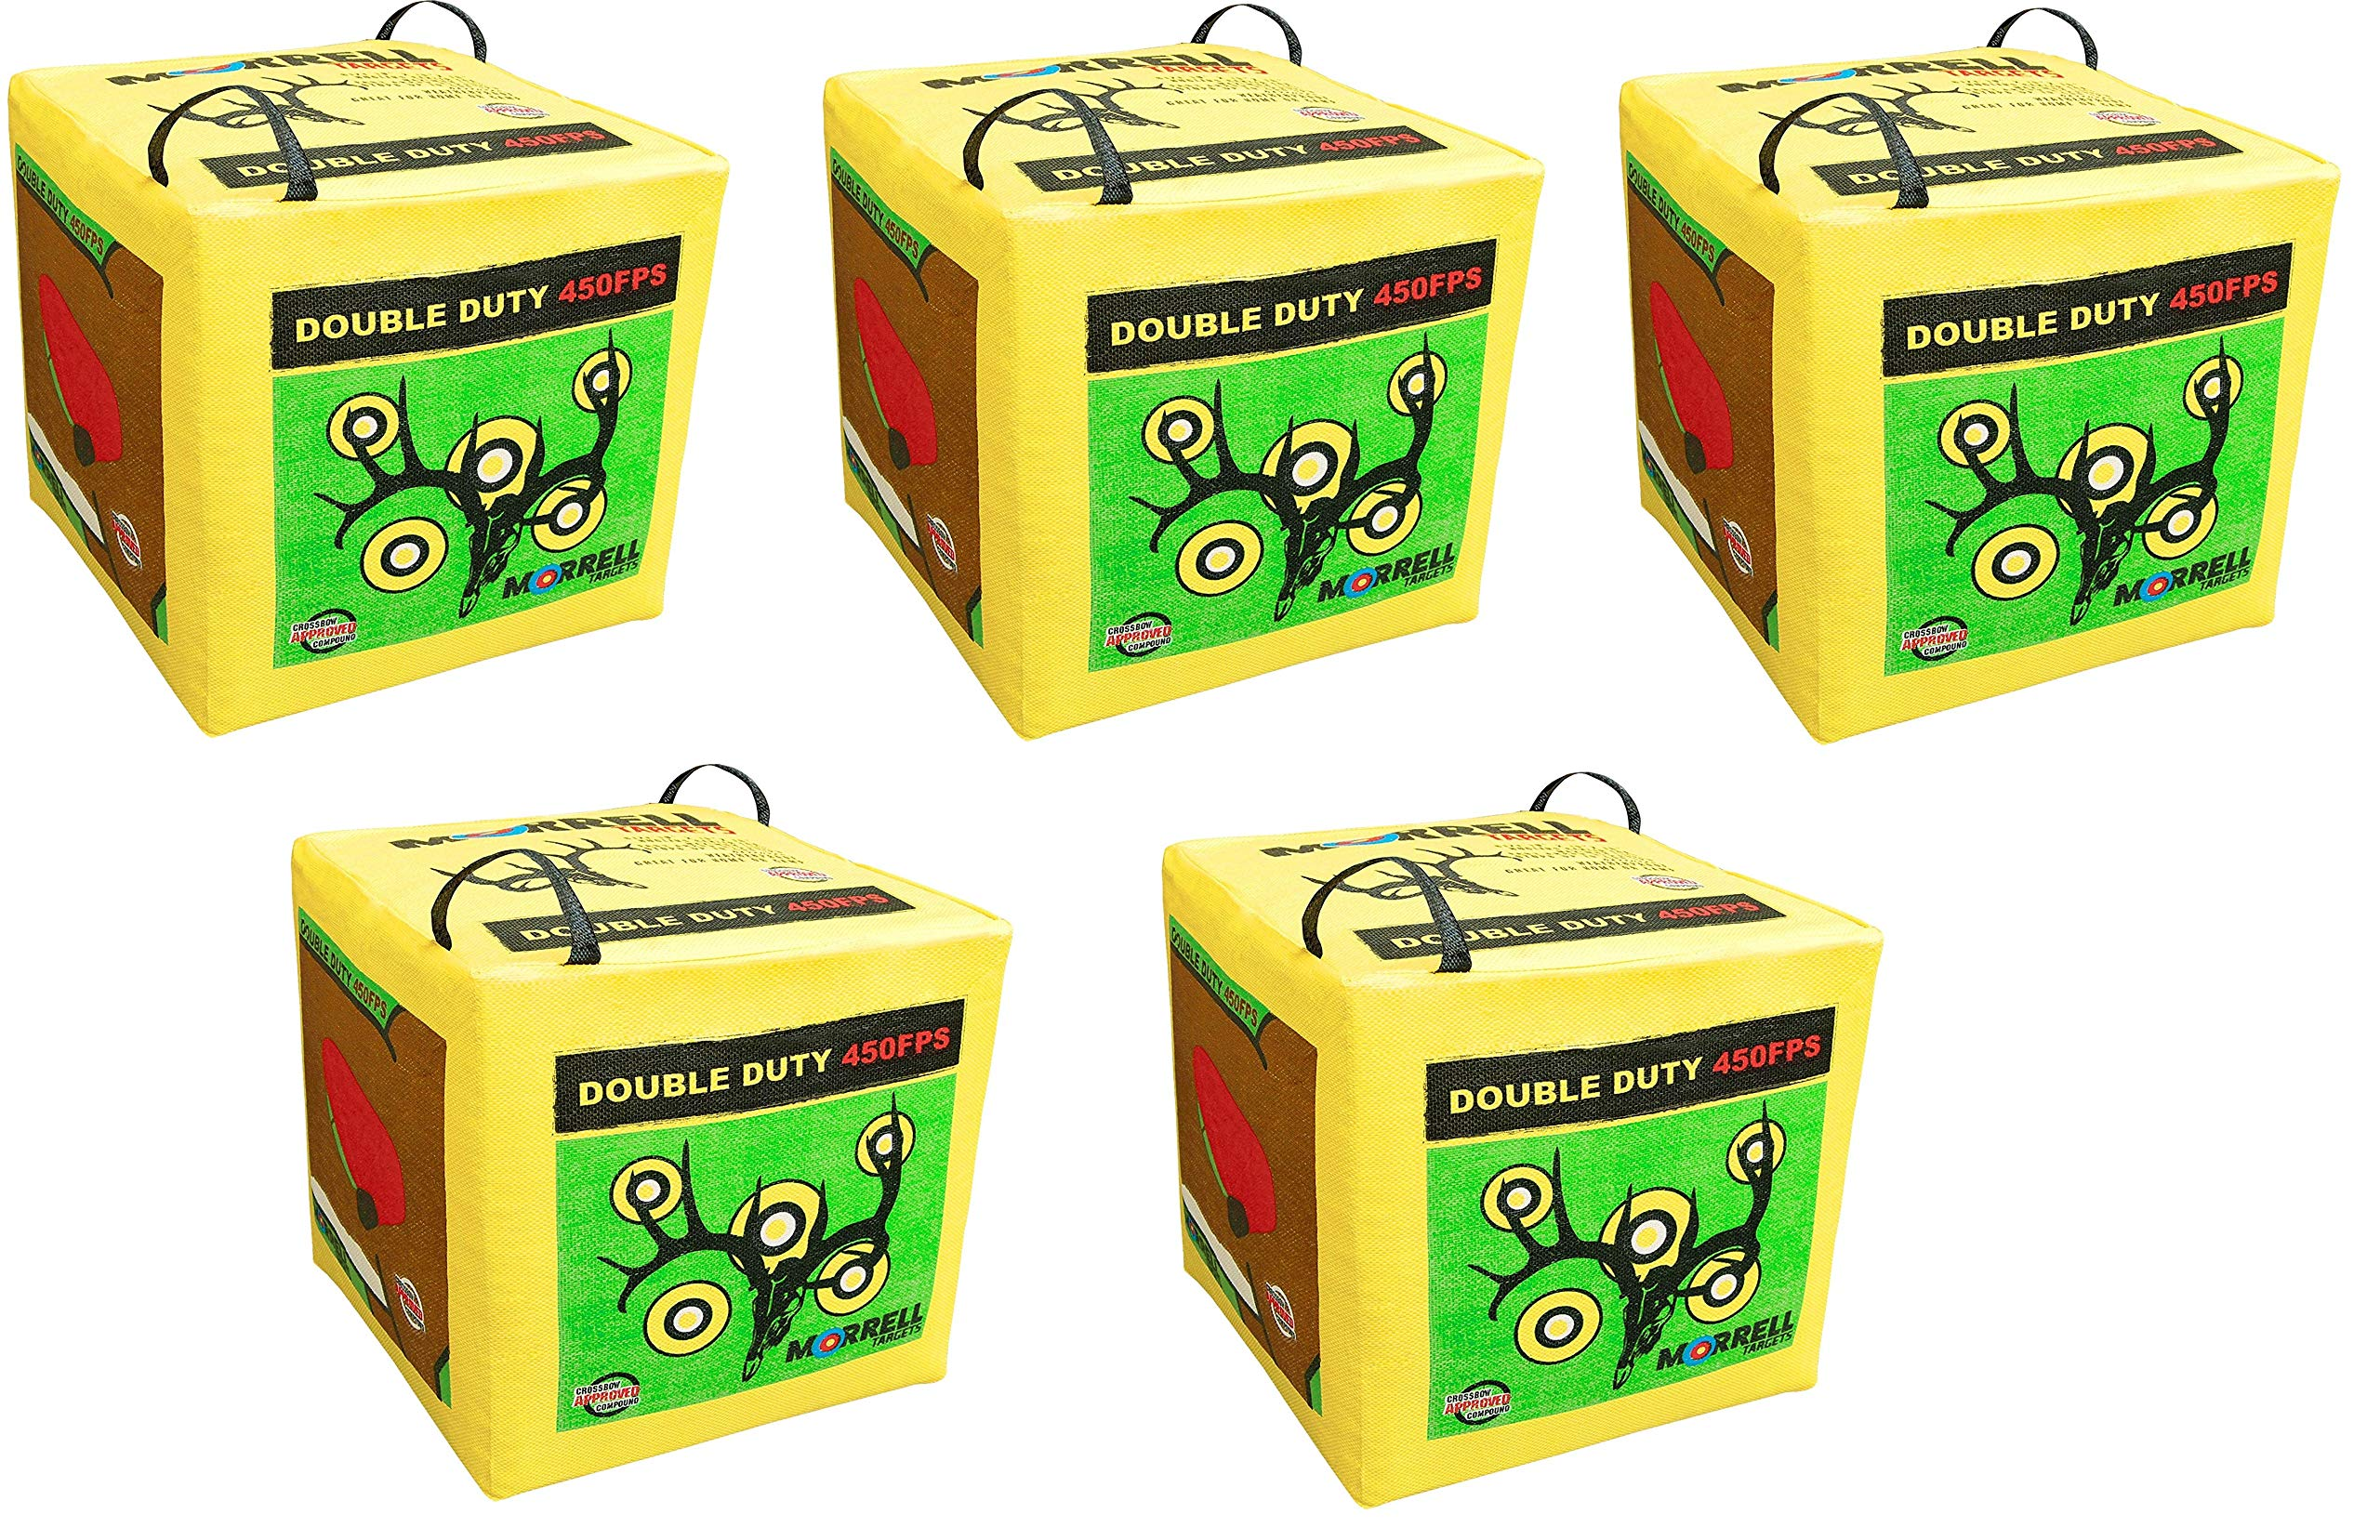 Morrell Double Duty 450FPS Field Point Bag Archery Target - for Crossbows, Compounds, Traditional Bows and Airbows (5-Pack) by Morrell